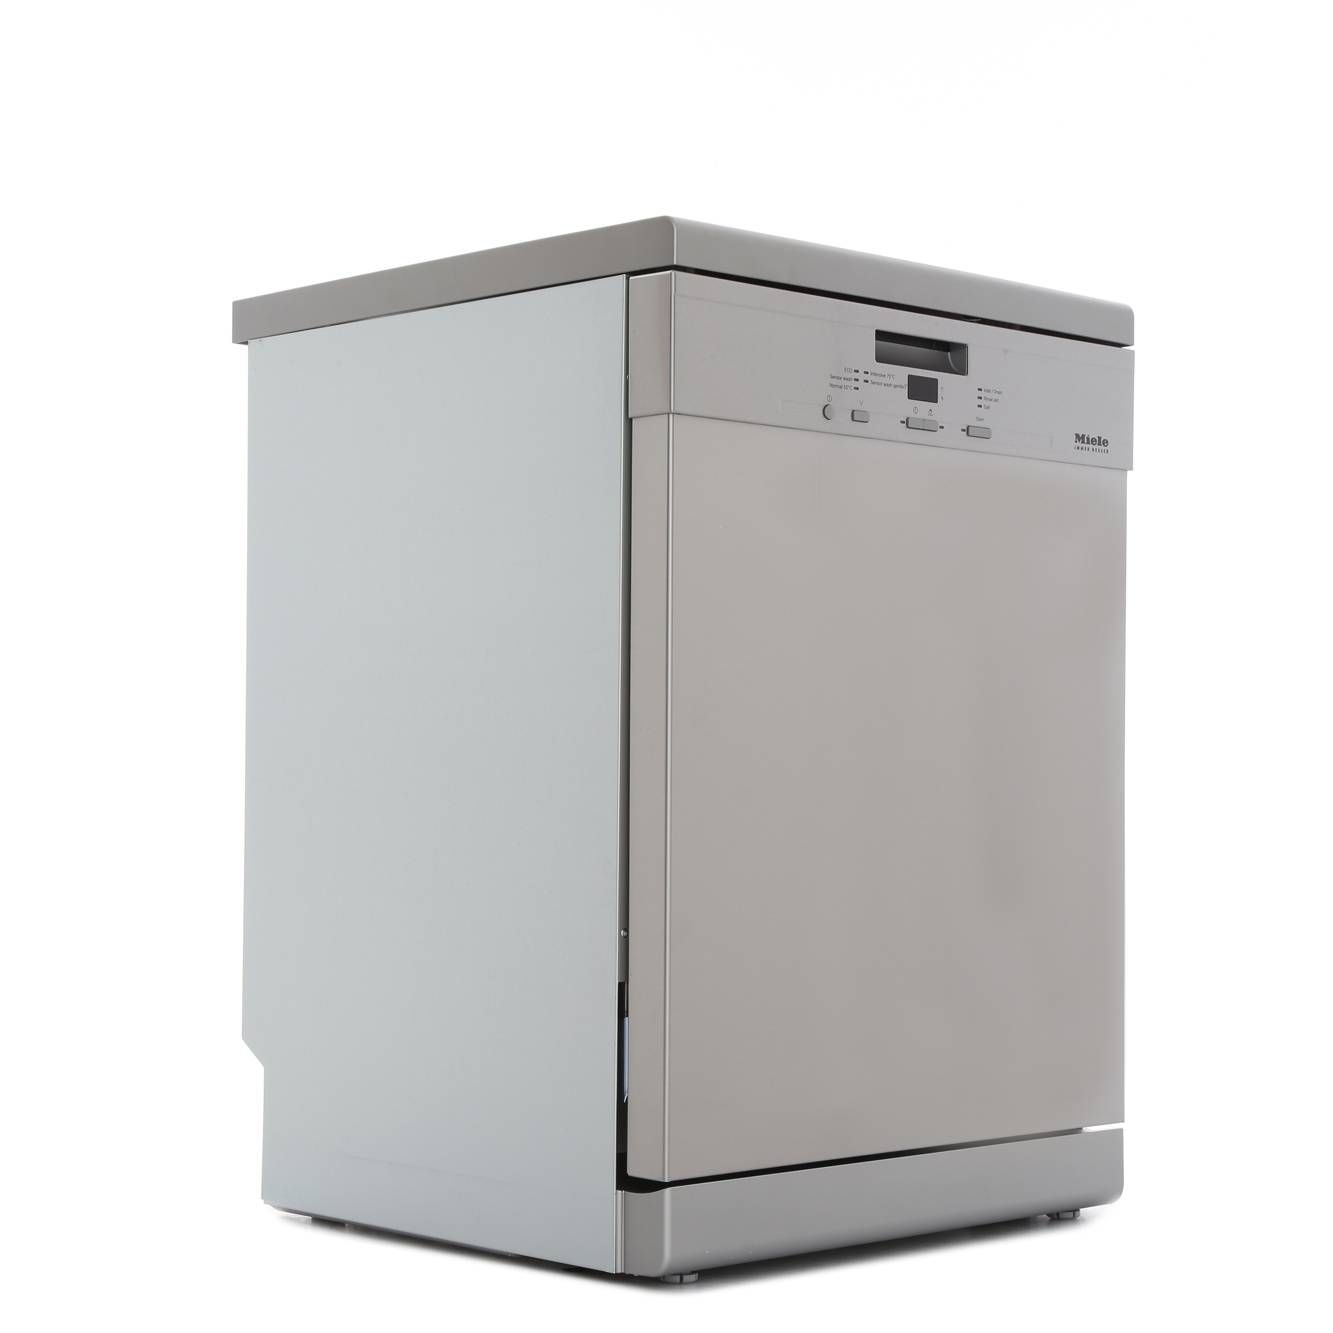 Miele G4920BK CleanSteel Dishwasher - Stainless Steel